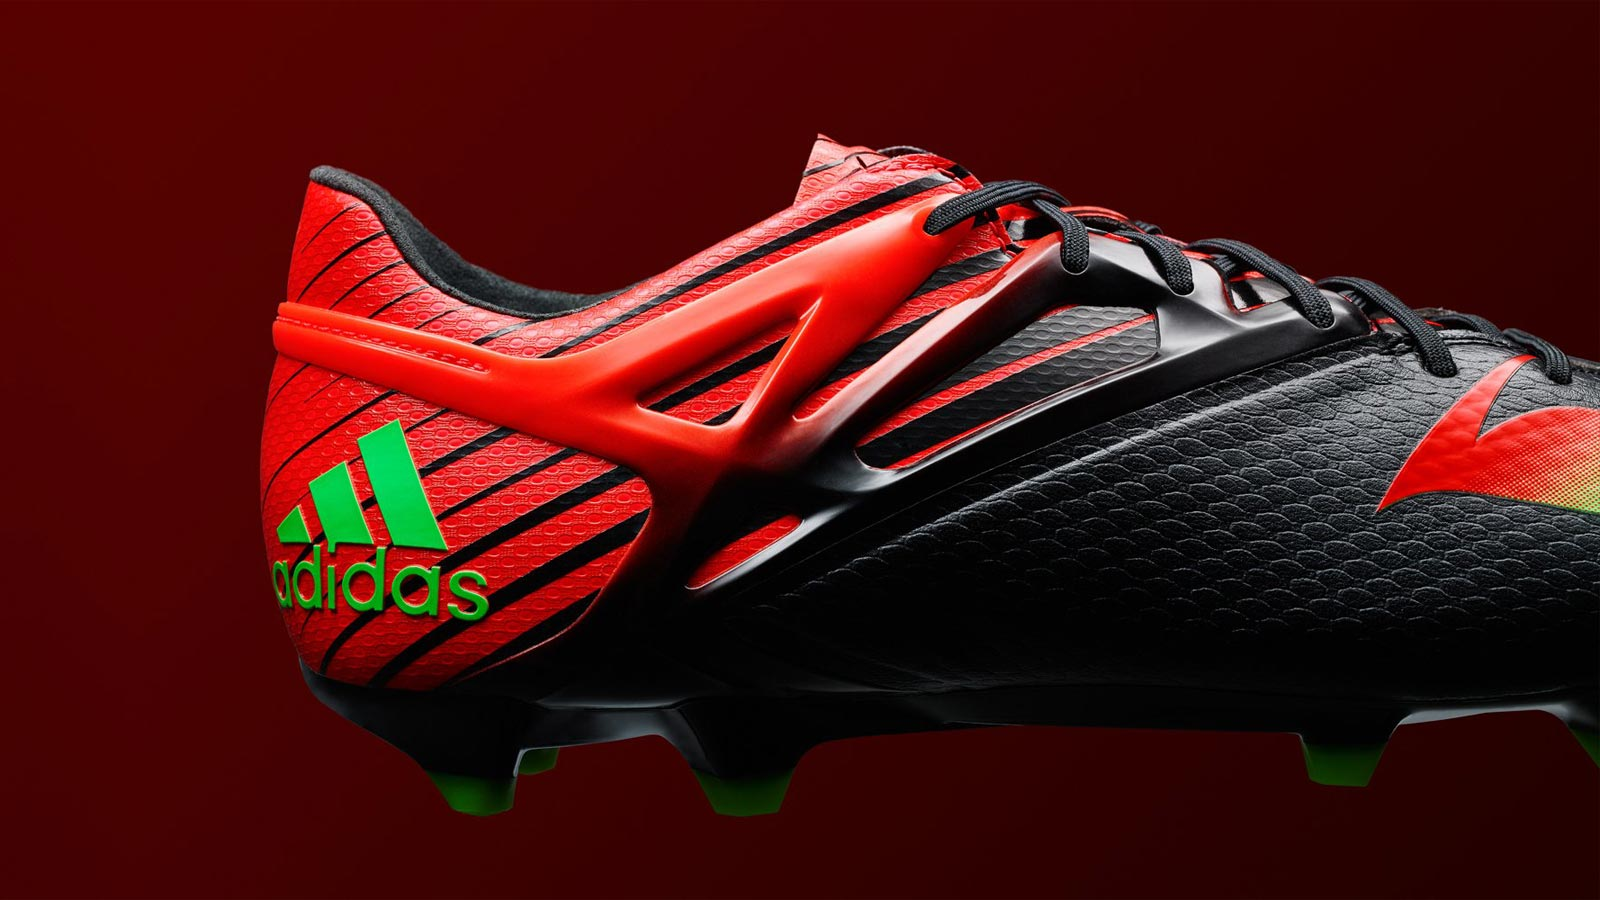 6c7eeacf2a1 Striking Adidas Messi 2015 2016 Boots Released Footy 1600x900